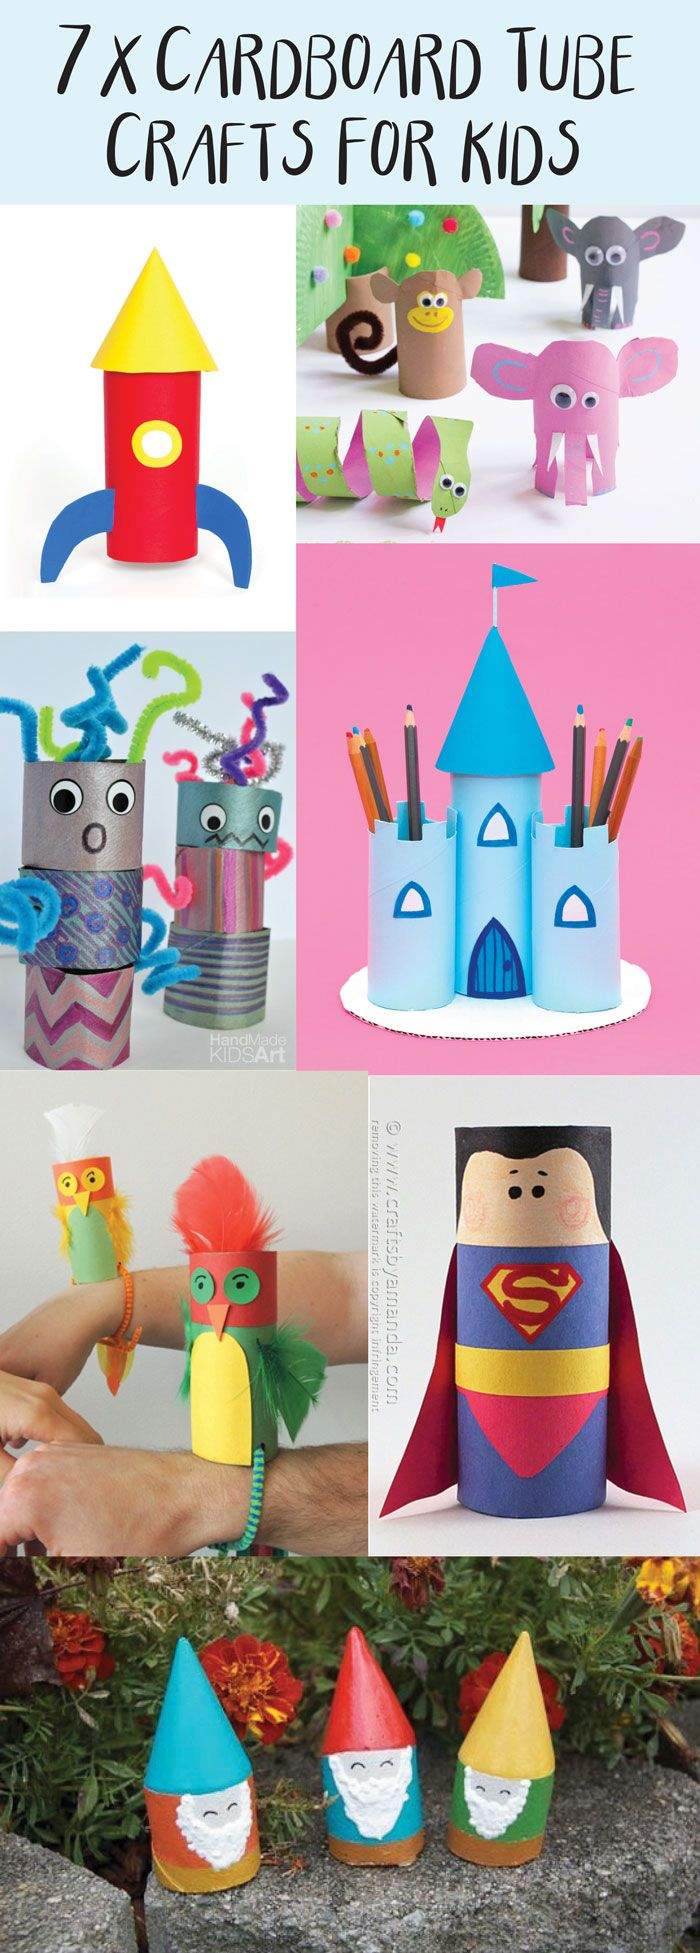 7 great kids craft ideas to make from cardboard tubes! Toilet roll tube craft ideas that are fun and simple and everyone has them already in their homes!